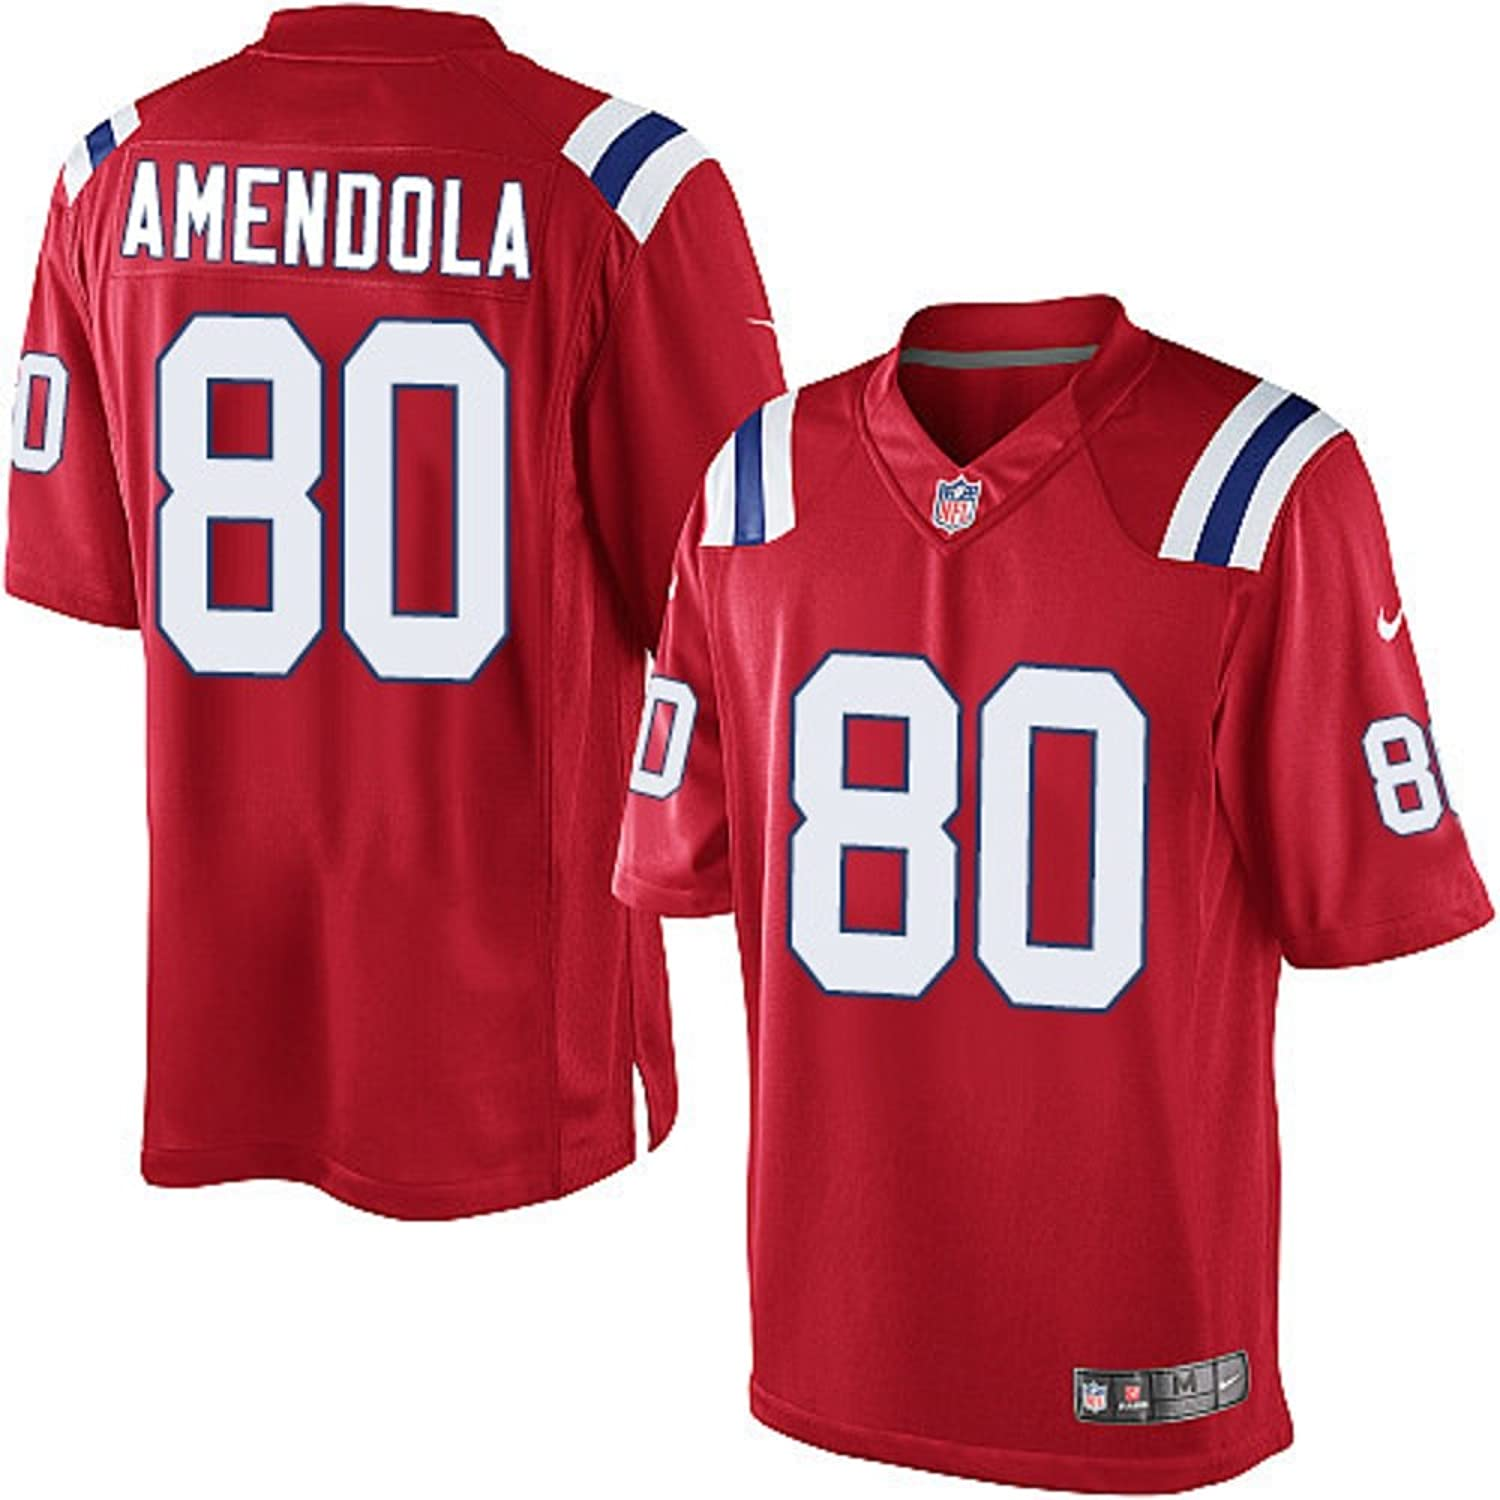 official photos 82c4a adbd7 NIKE Danny Amendola New England Patriots NFL Youth Red ...